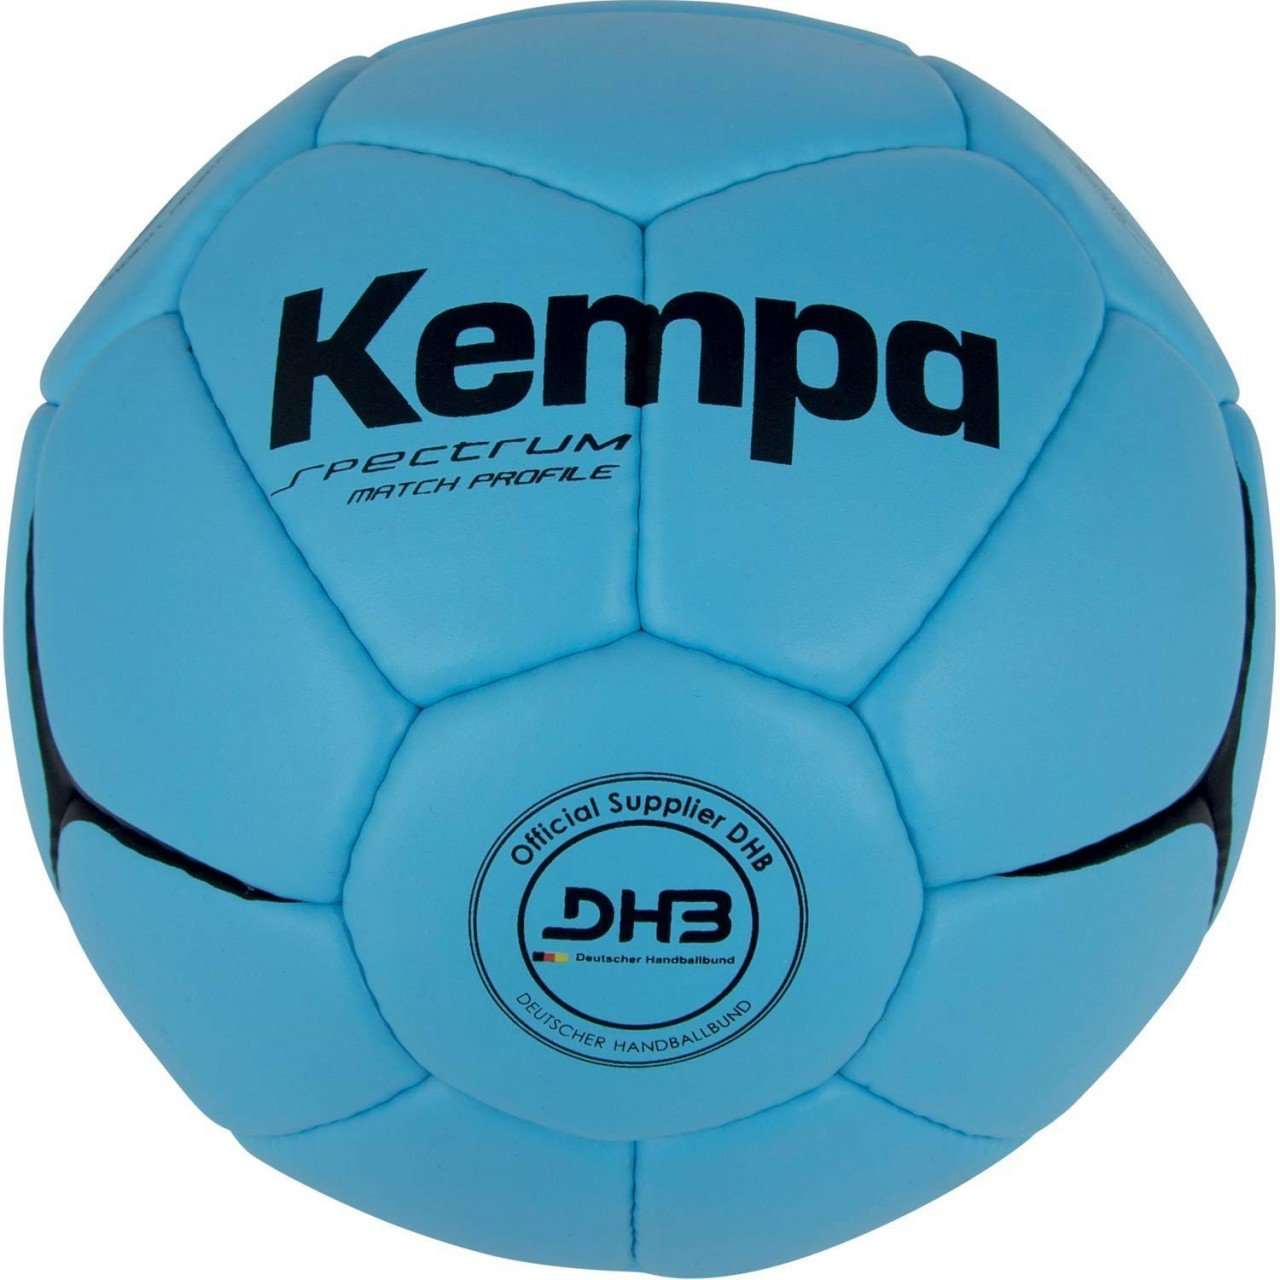 Kempa Ball Spectrum Training Black & Sky - Pelota de Balonmano ...